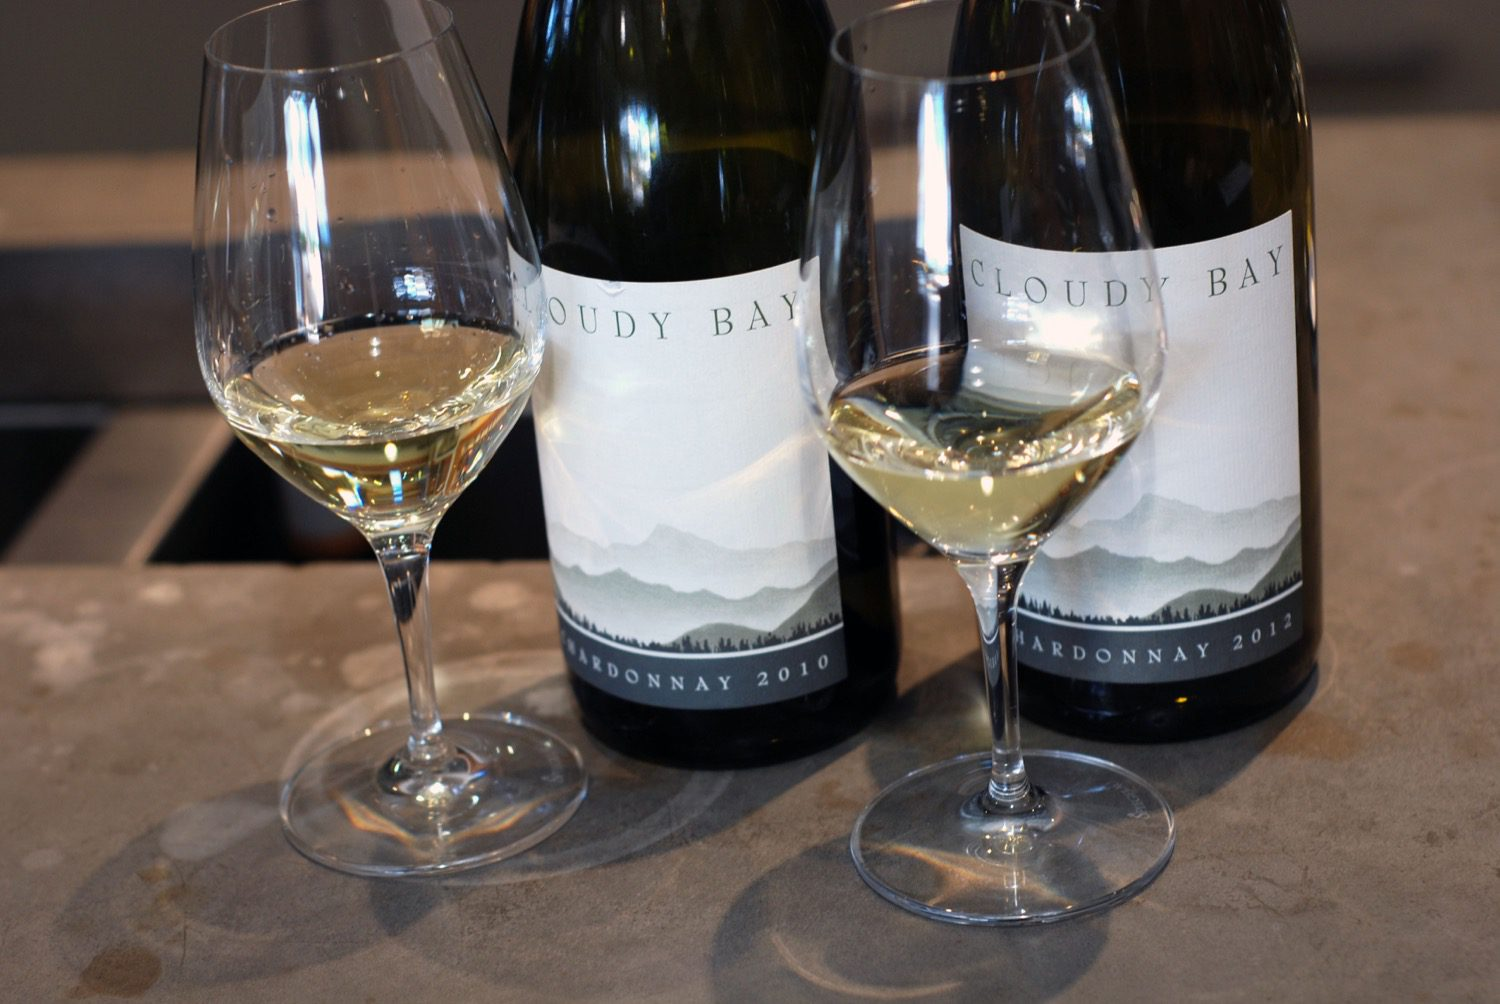 cloudy-bay-neuseeland-winery-05